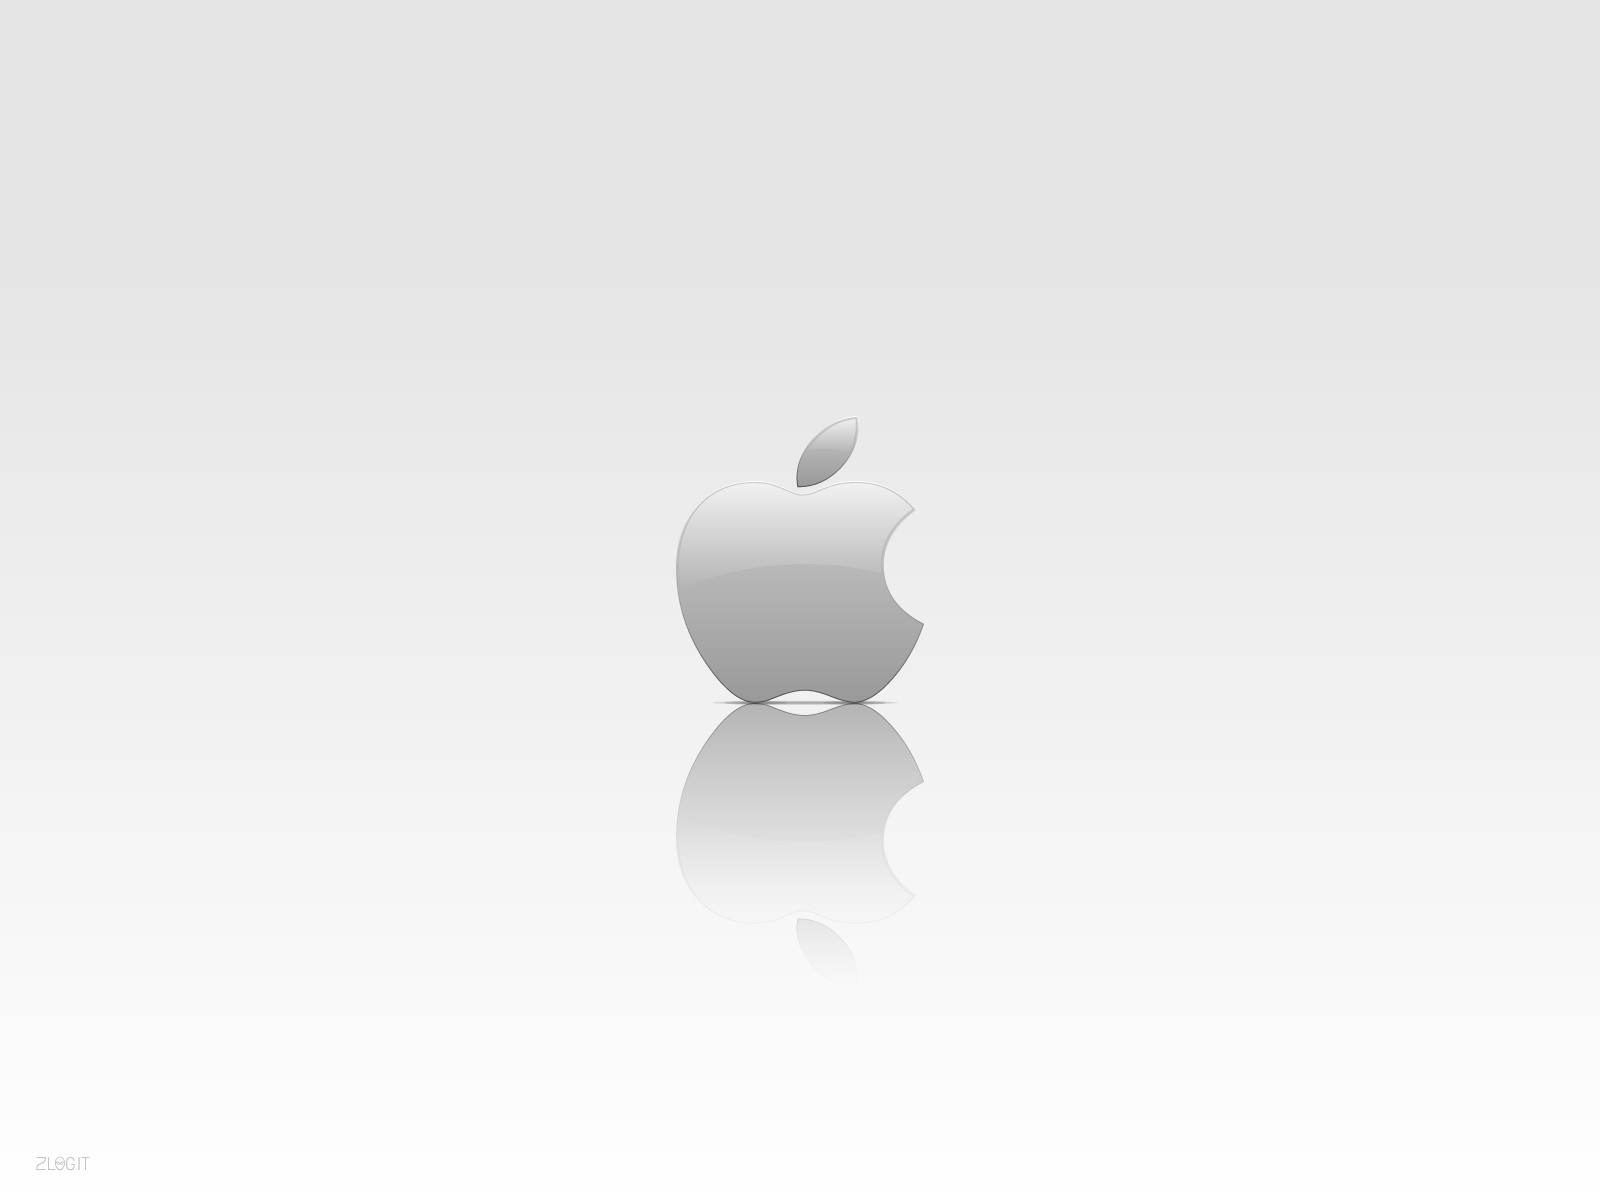 Logo & Logo Wallpaper Collection: 100+ Top Apple Logos